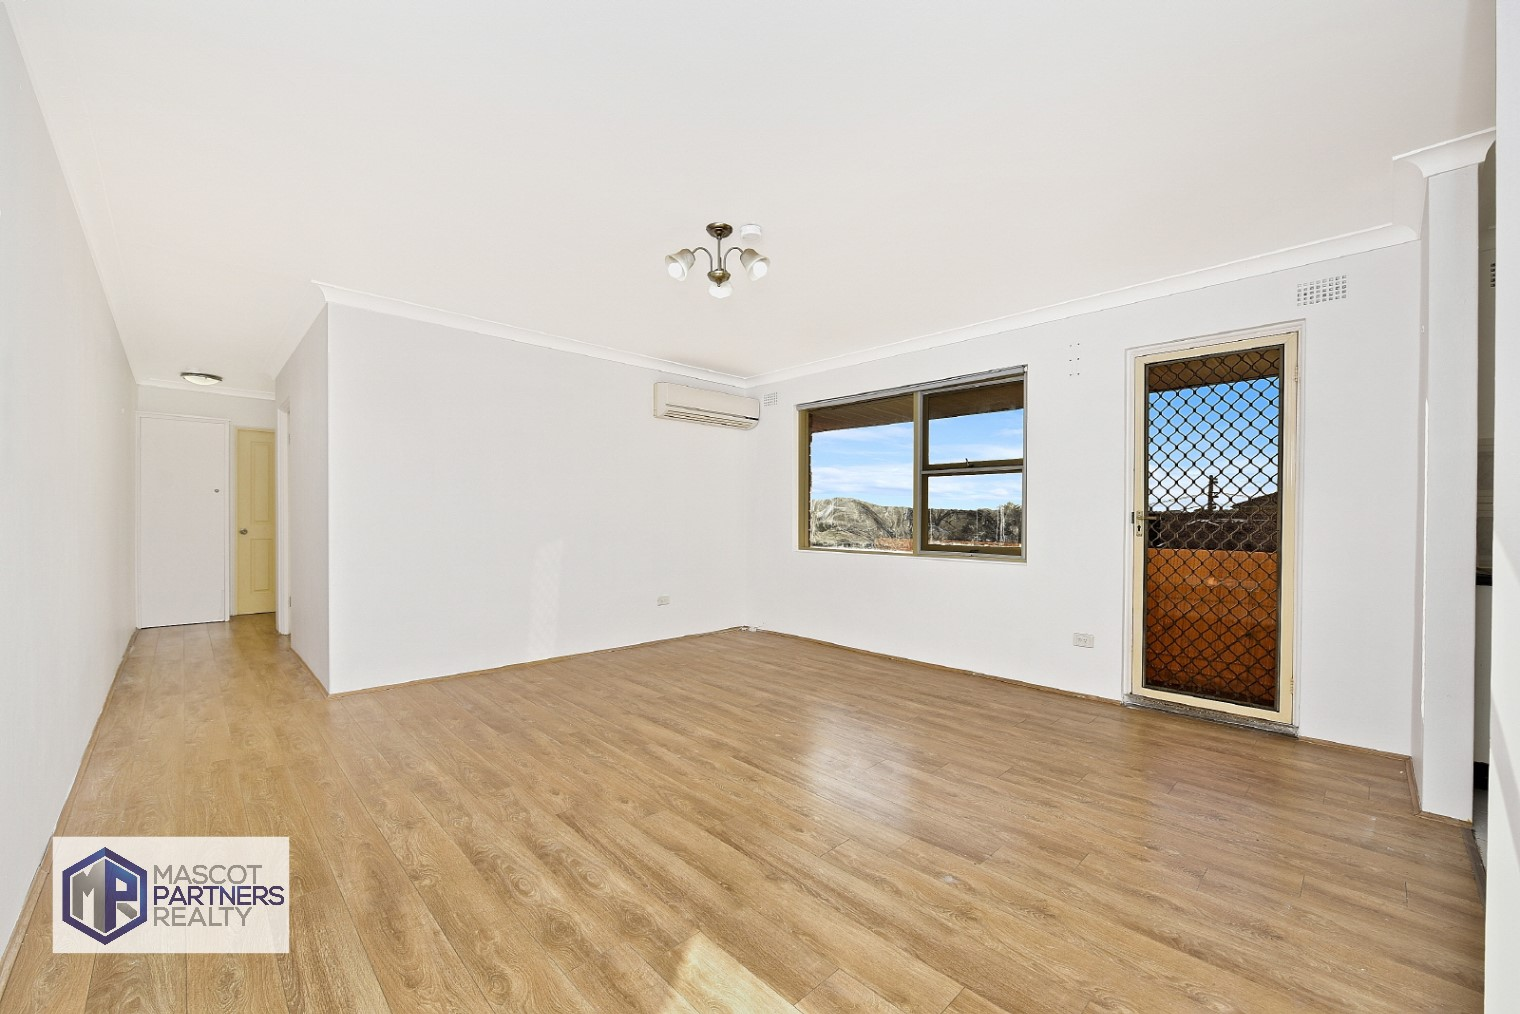 5/30 Denman Avenue, Wiley park NSW 2195 (LEASED)